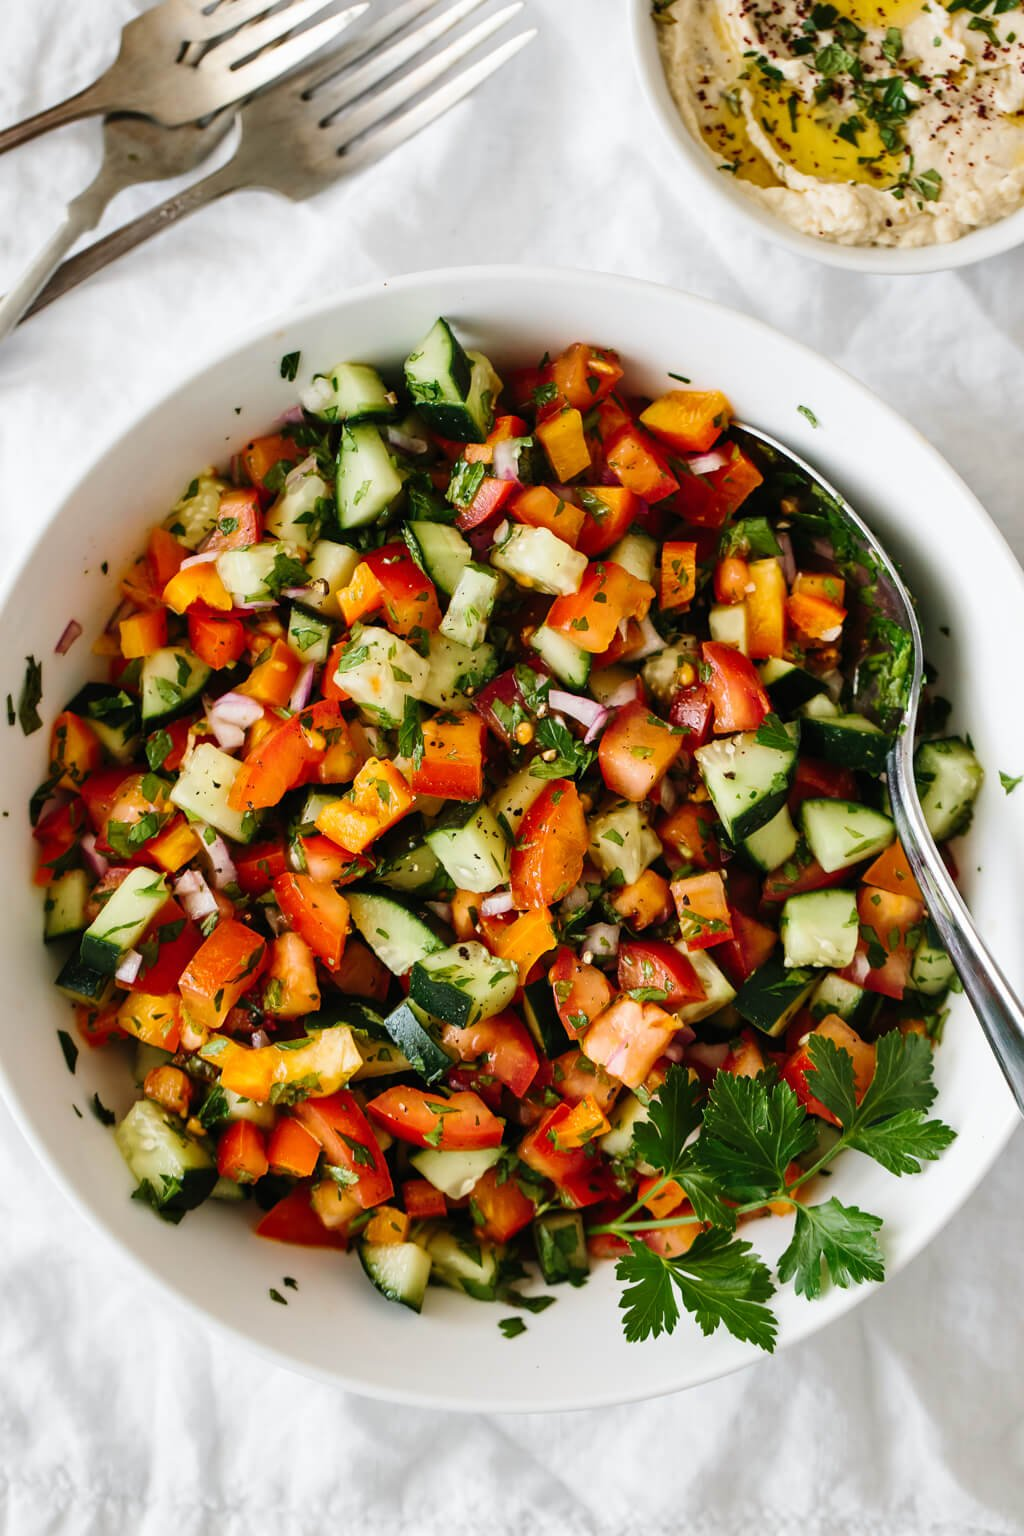 Israeli salad made from tomatoes, cucumber, bell pepper, red onion and herbs in a white bowl.